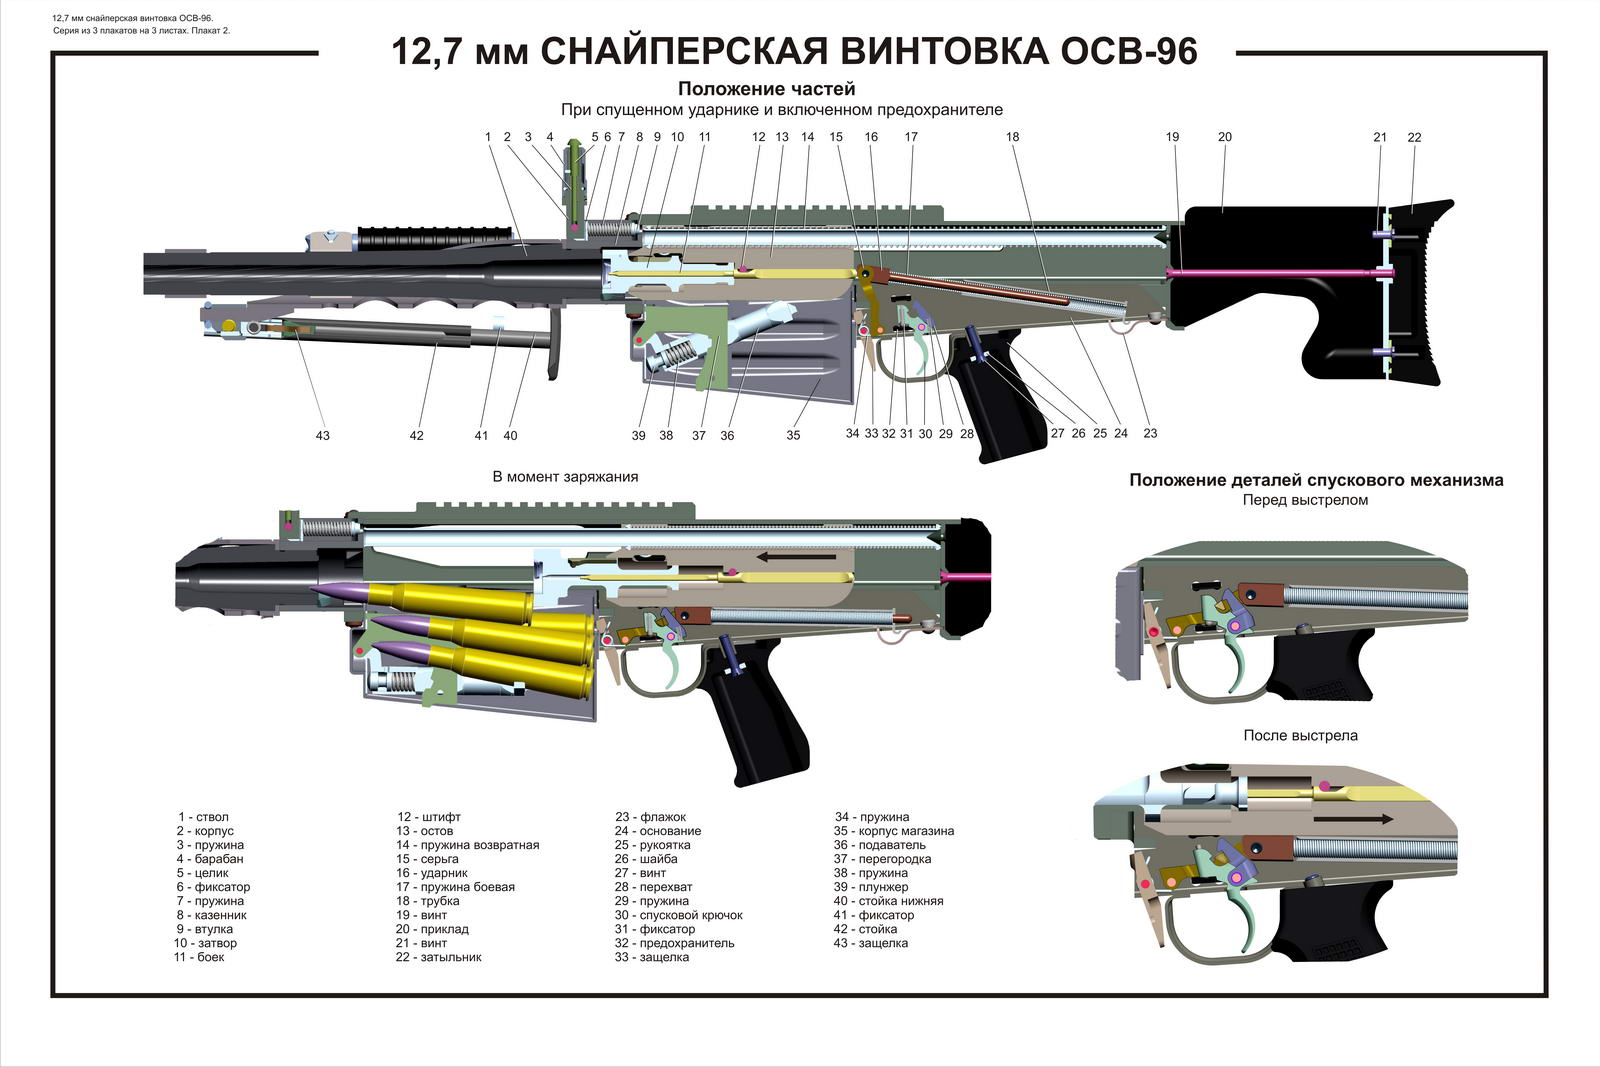 12.7 mm sniper rifle OSV-96